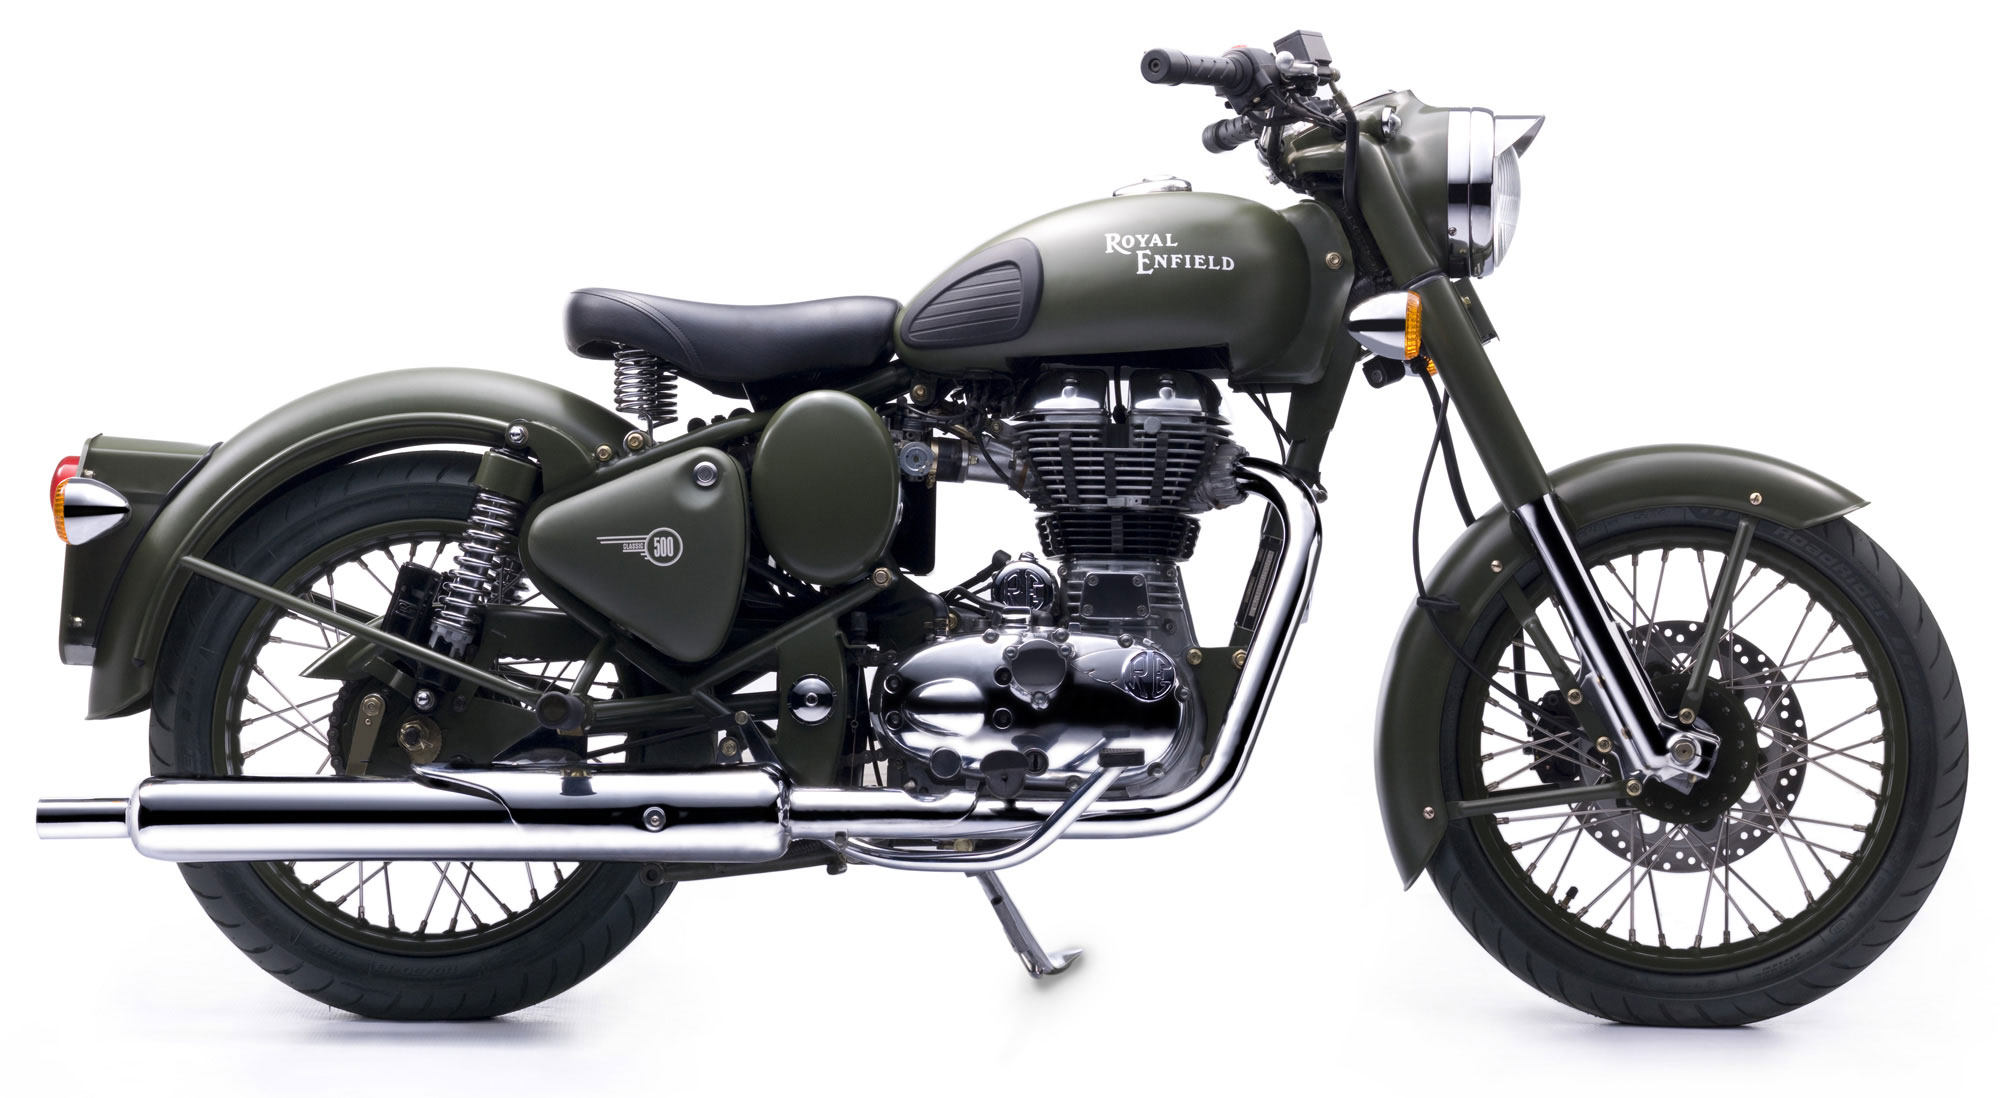 Royal Enfield Bullet 500 Army 1992 images #123381